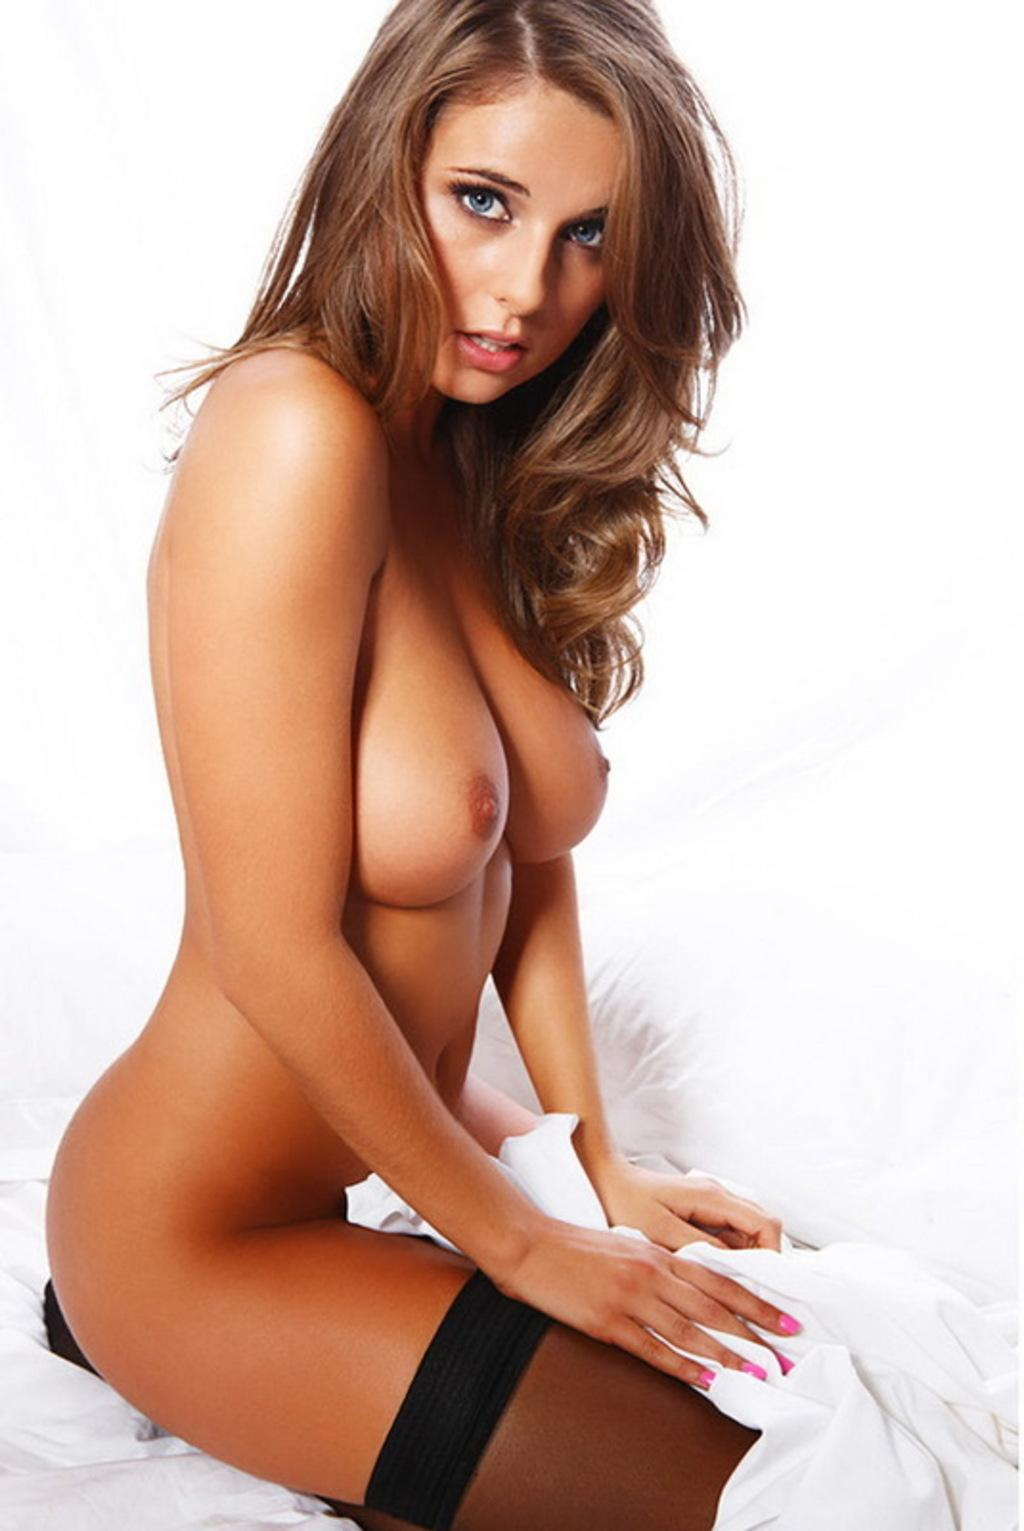 Elle Basey can get it http://t.co/w8g1DwLKiB